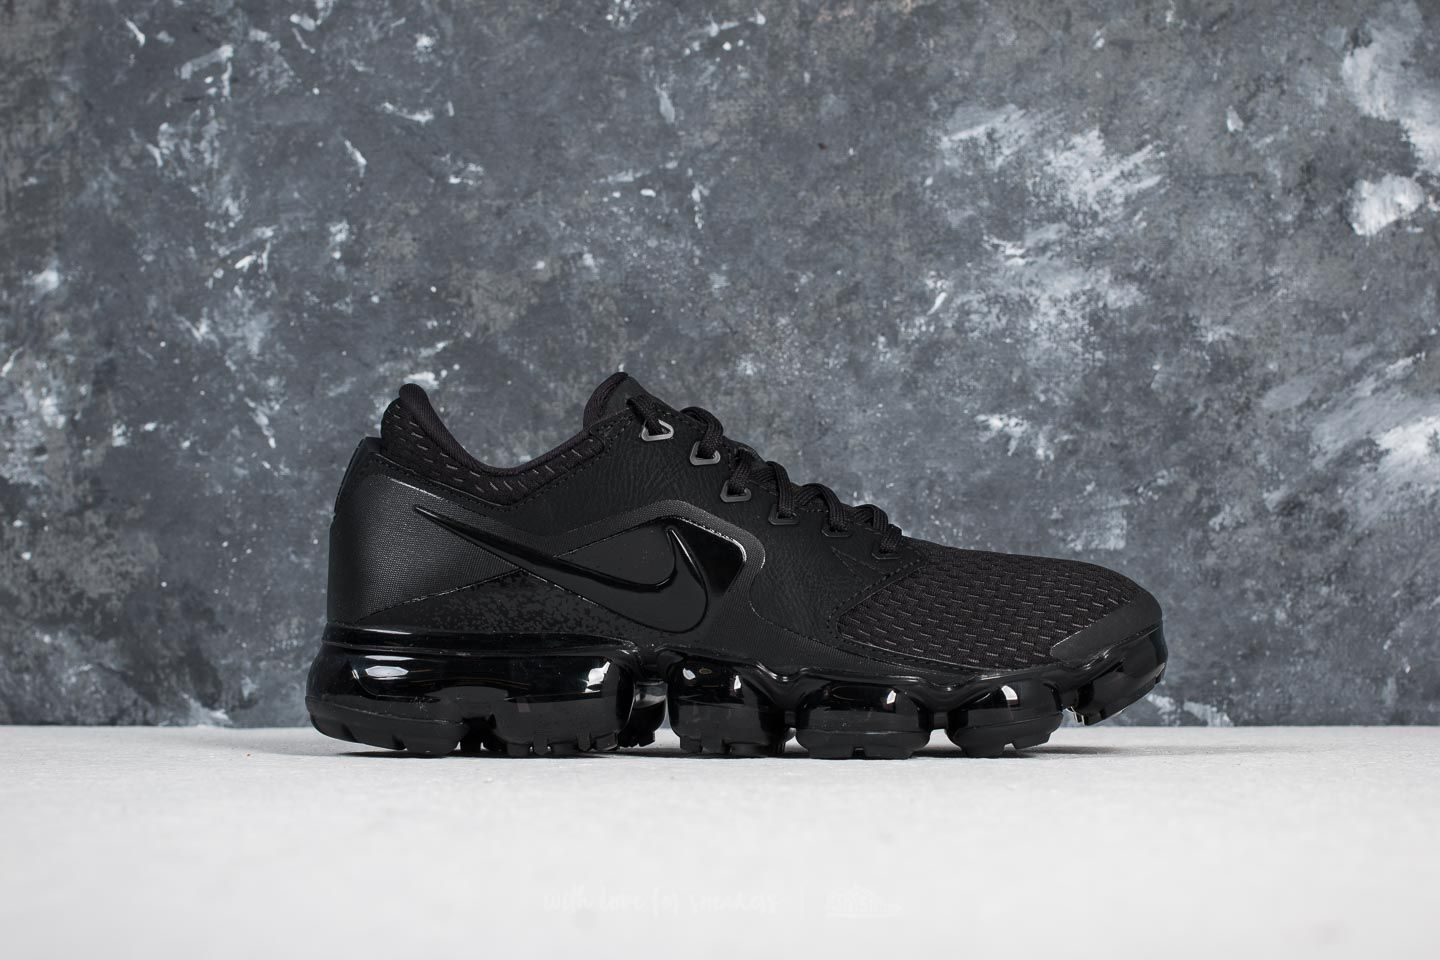 0e2575129c5 Nike Air Vapormax Wmns Black  Black-Black-Anthracite at a great price 191